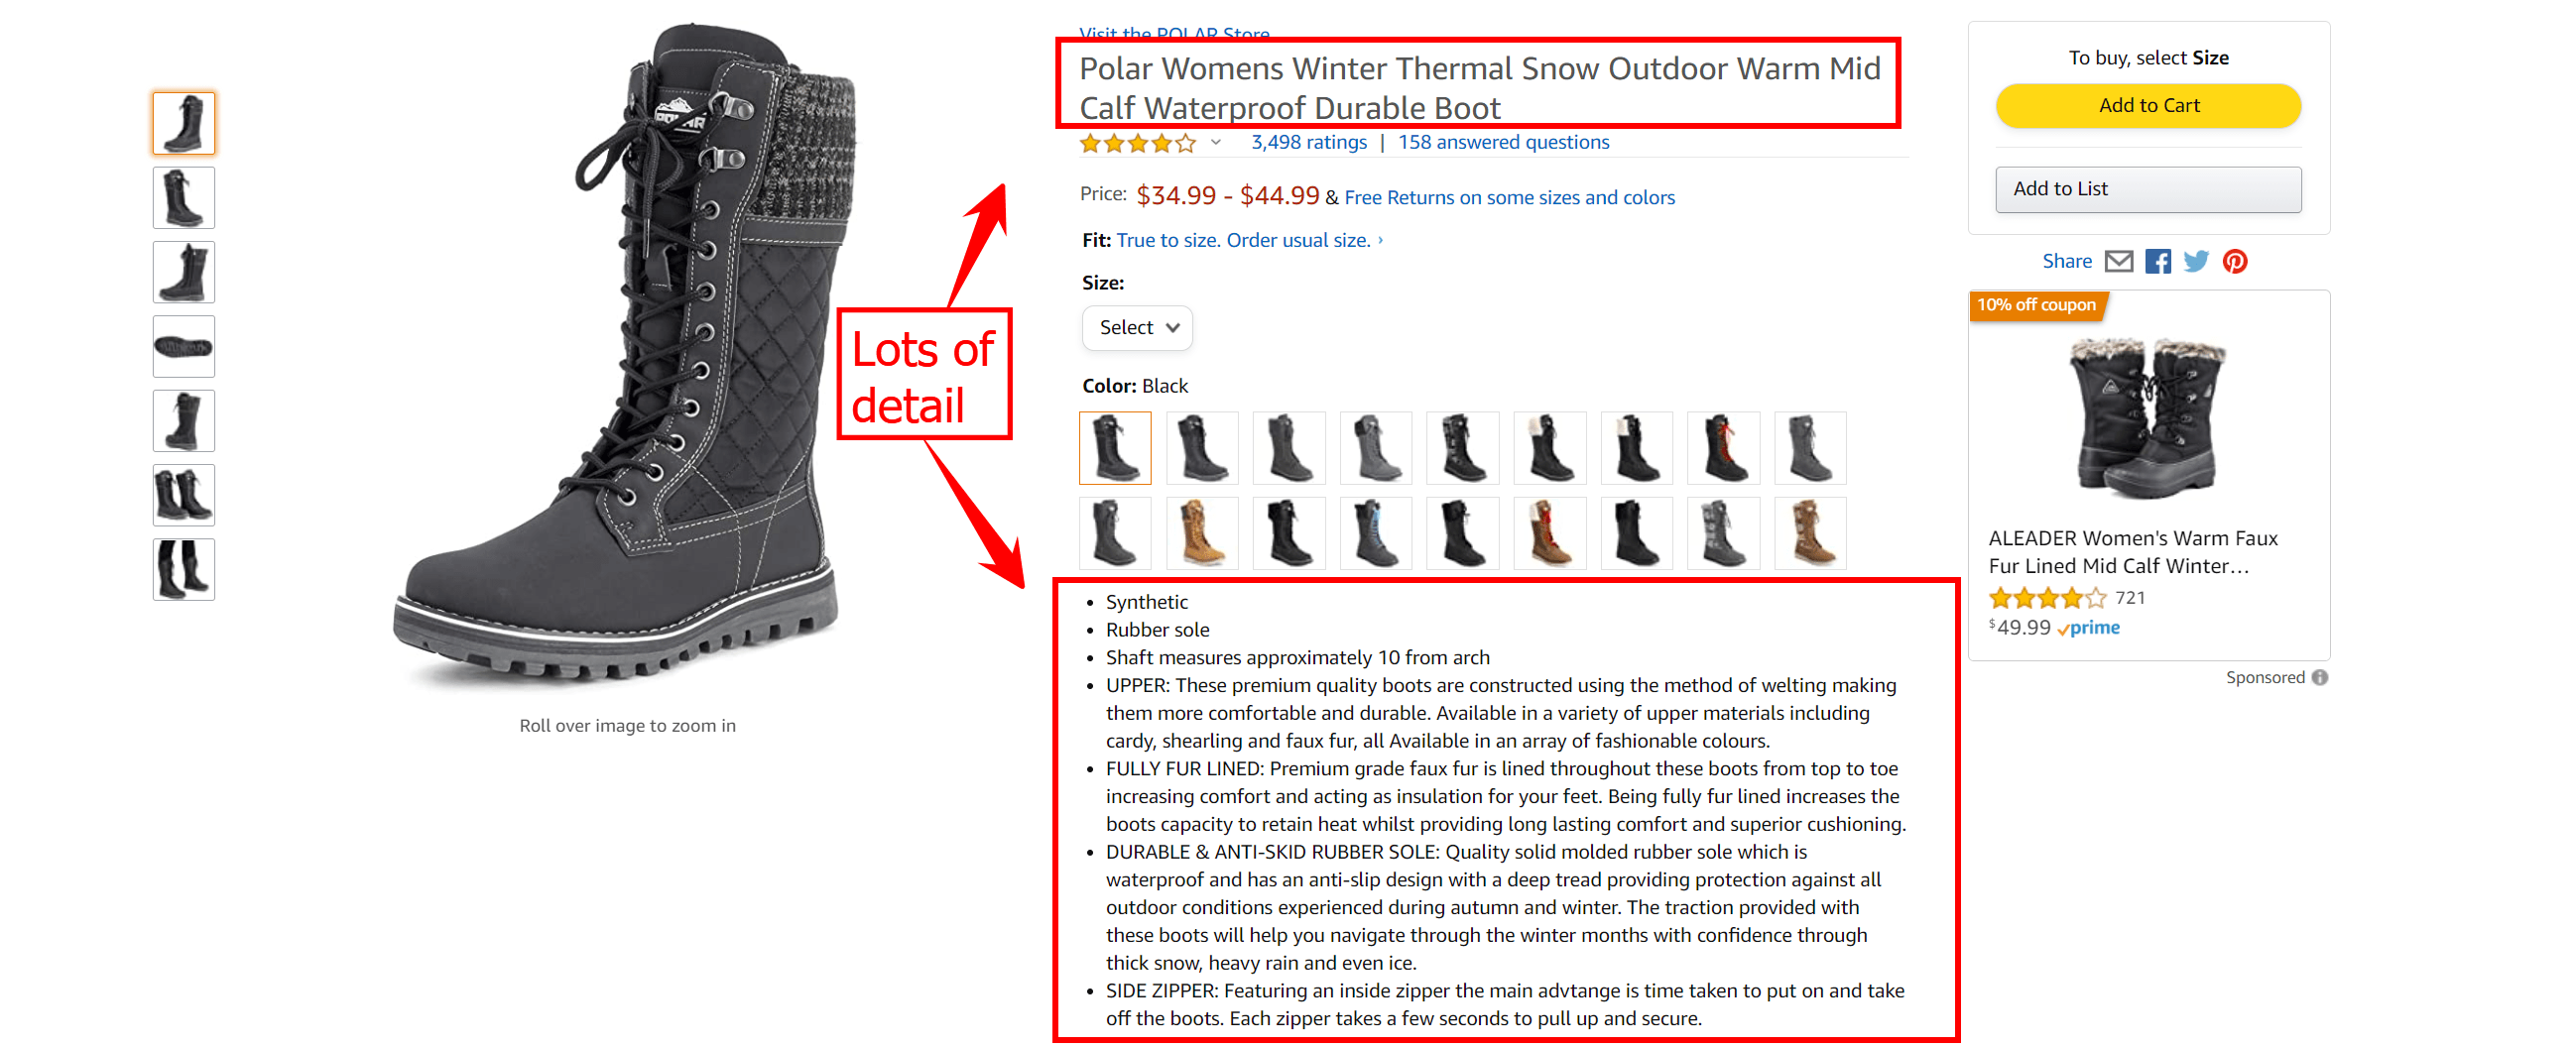 A product listing on Amazon for a winter boot